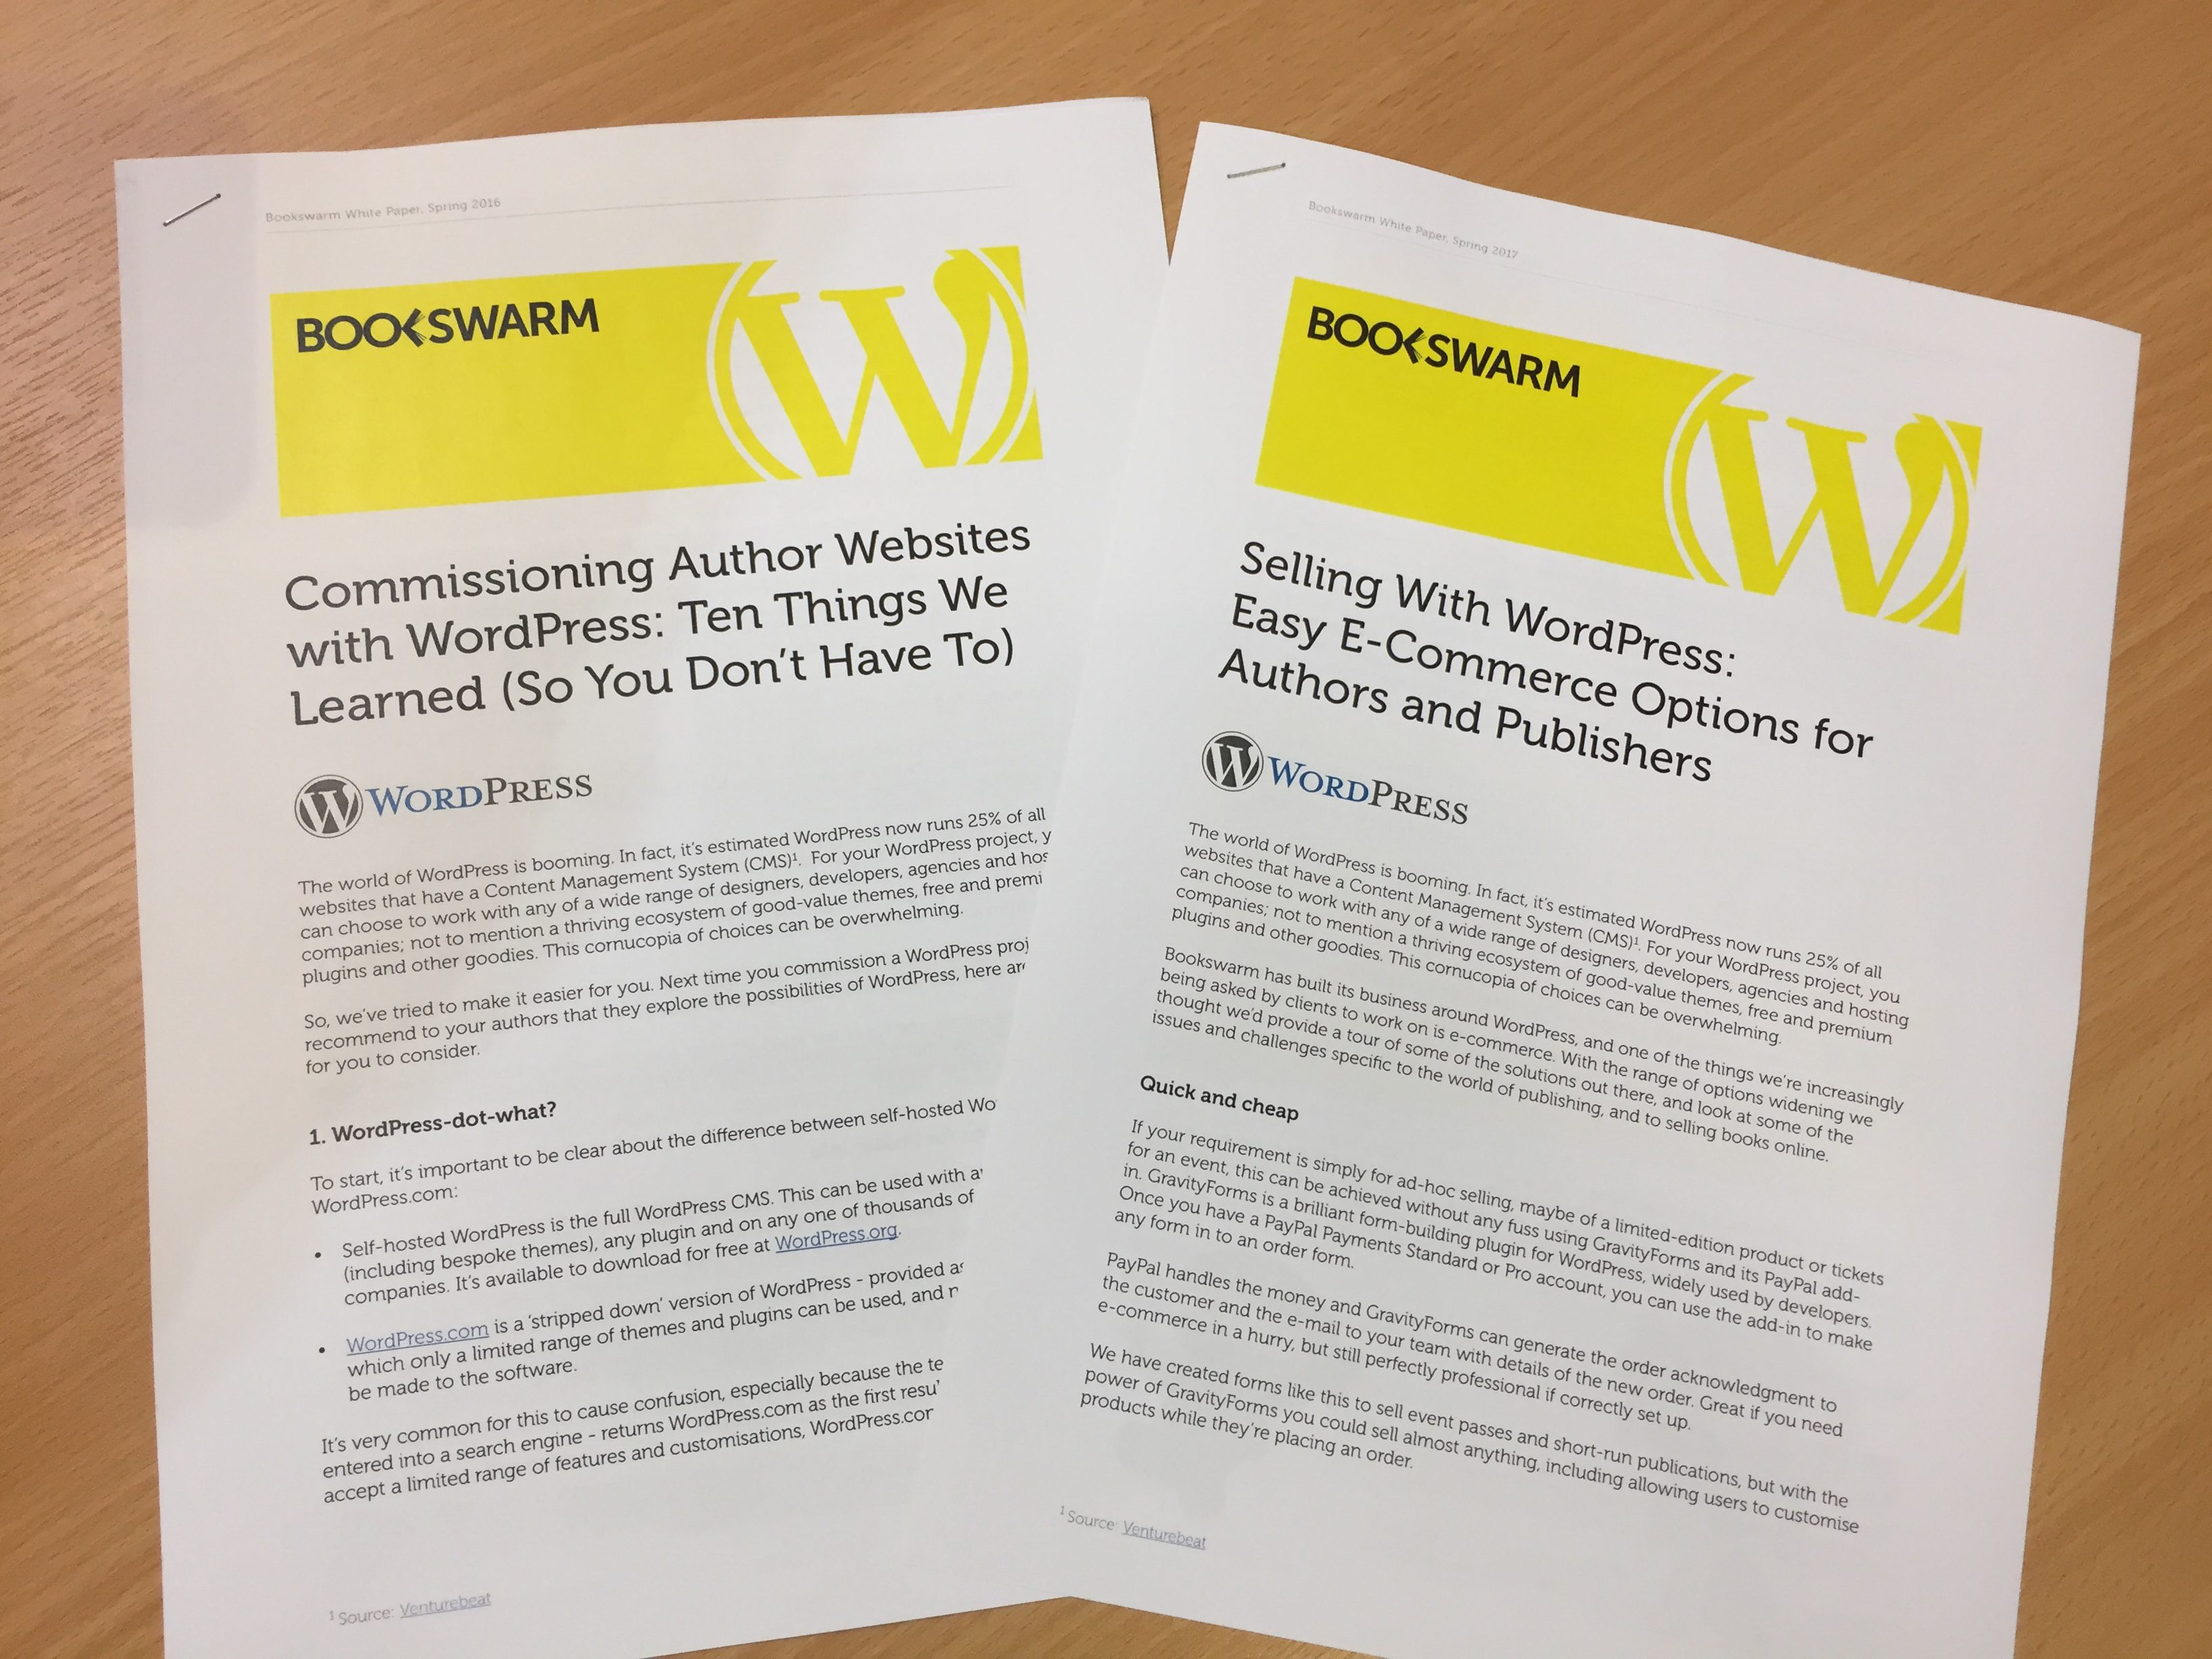 Download our latest White Paper on e-commerce options for WordPress